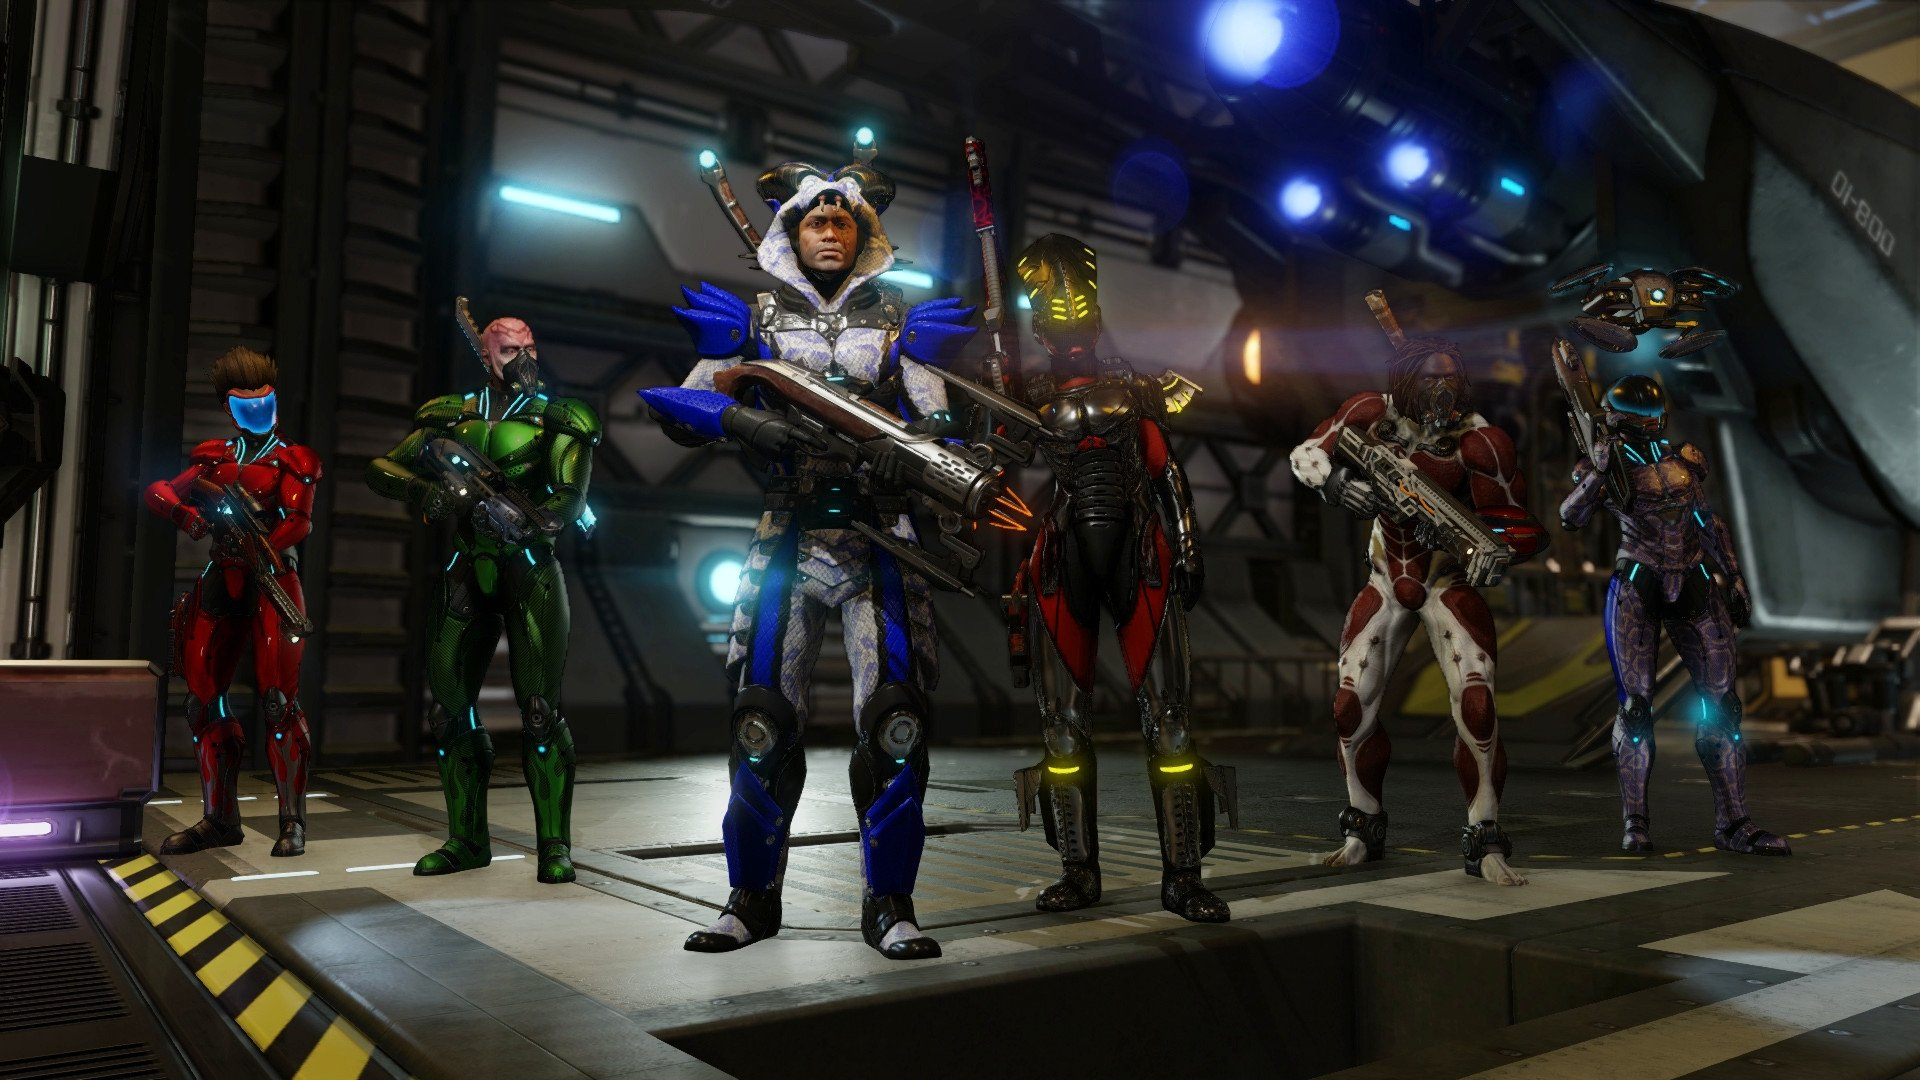 XCOM 2 - Alien Hunters game image